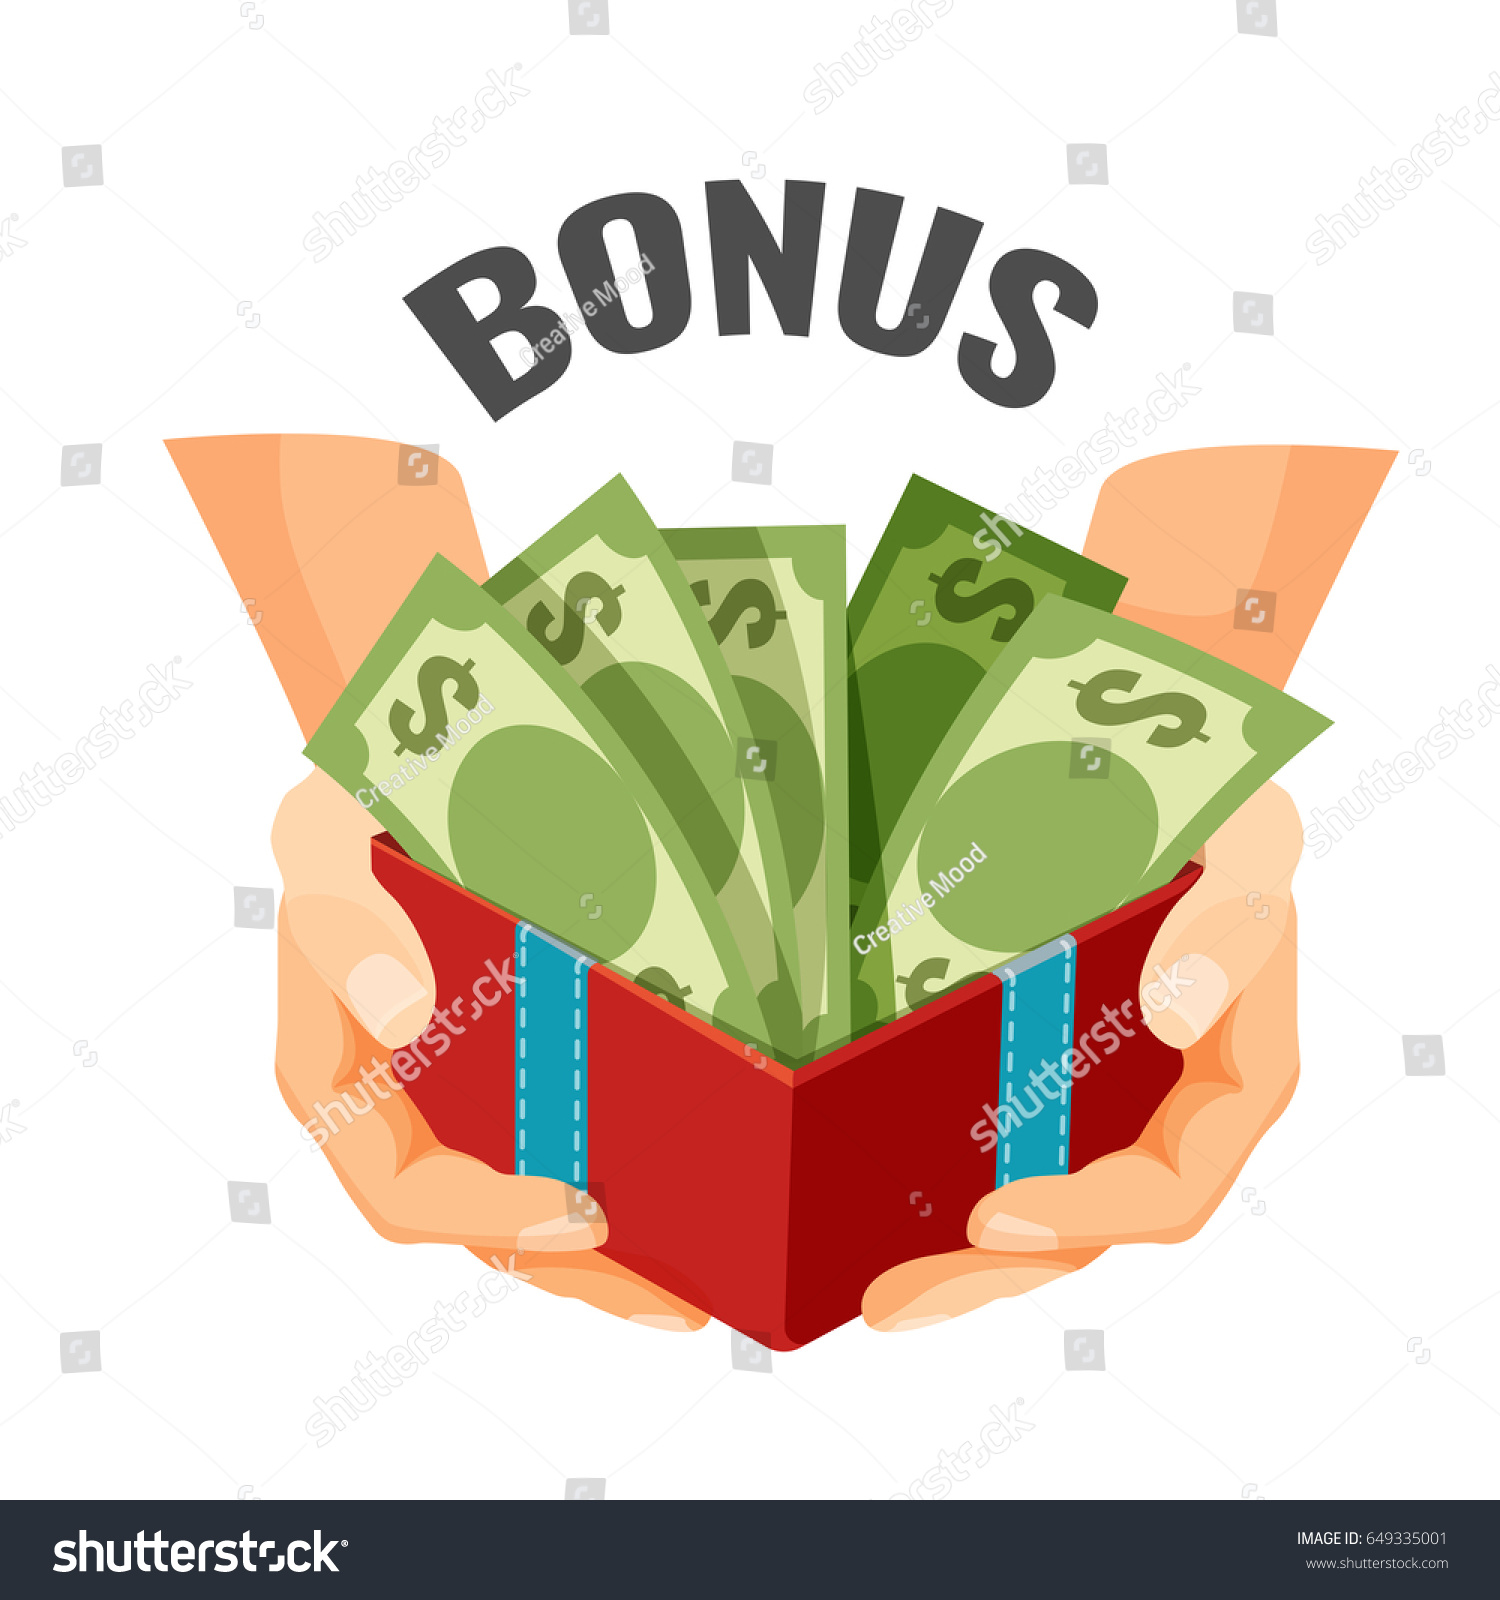 open present clipart. giving money in open present box with dollar banknotes bonus clipart i